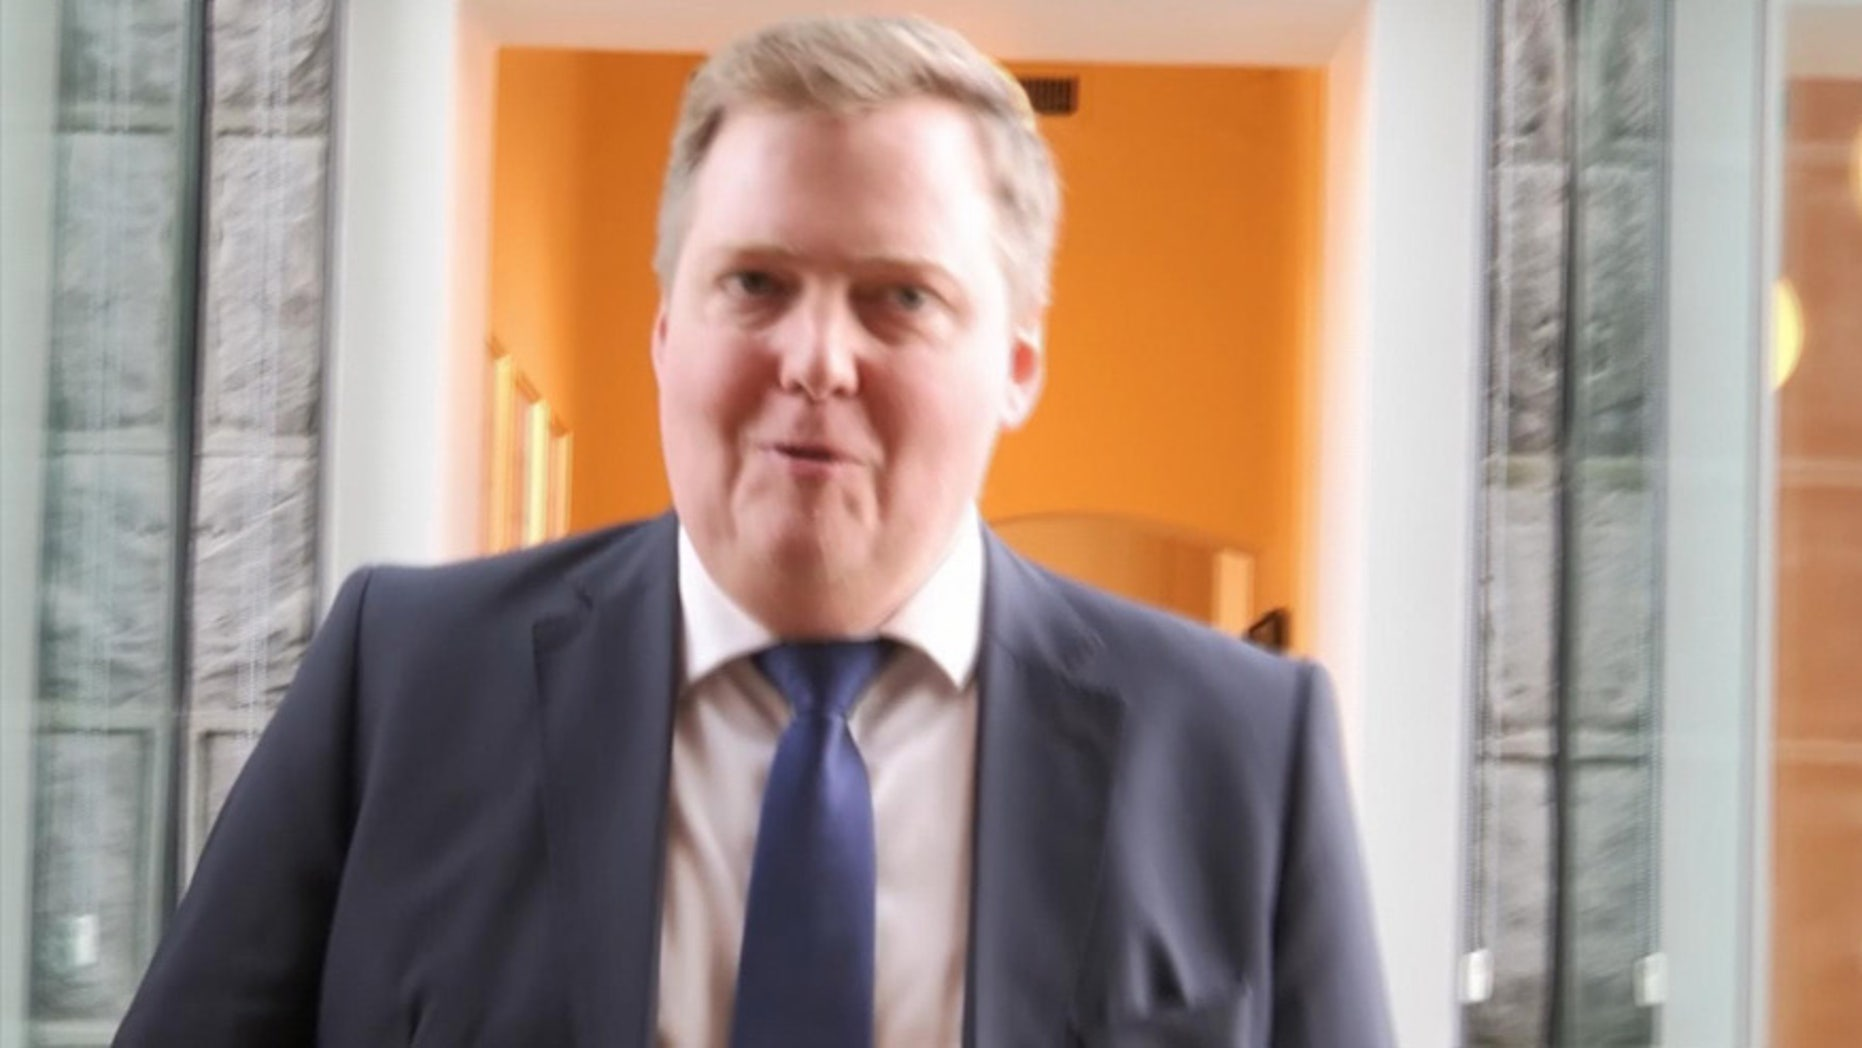 April 5, 2016: In this grab taken from video, Iceland's Prime Minister Sigmundur David Gunnlaugsson leaves after holding a meeting at Iceland's Parliament in Reykjavik.